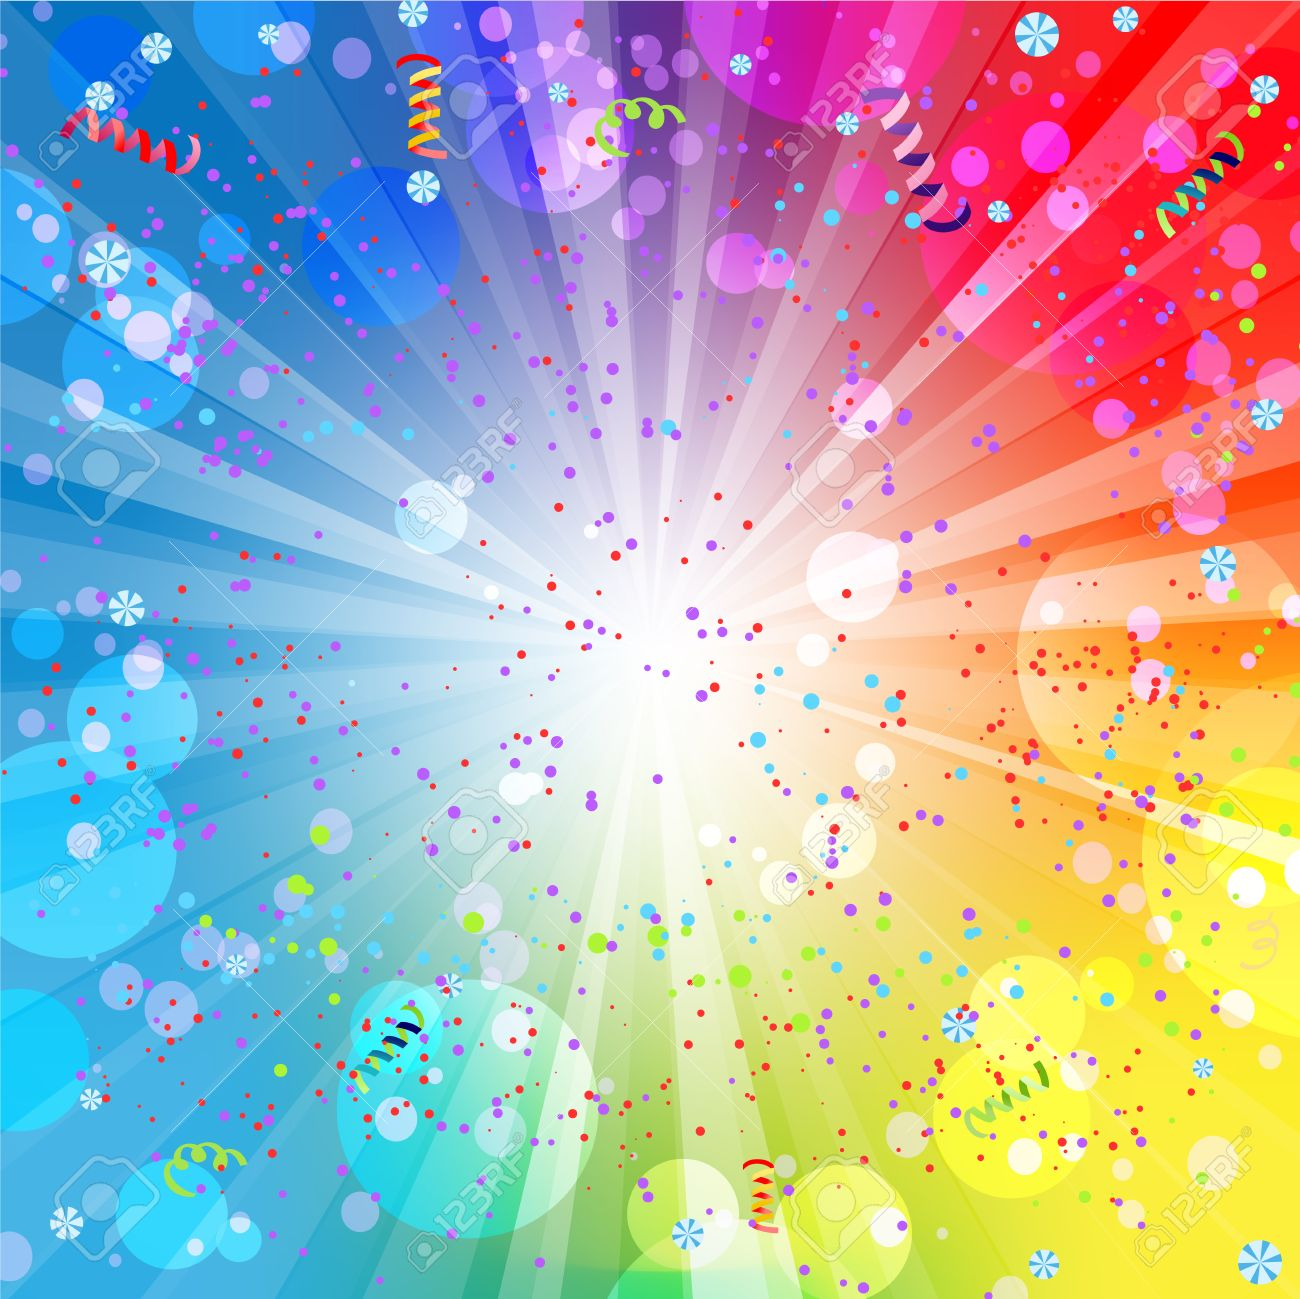 Festive colorful background with place for text - 32143221